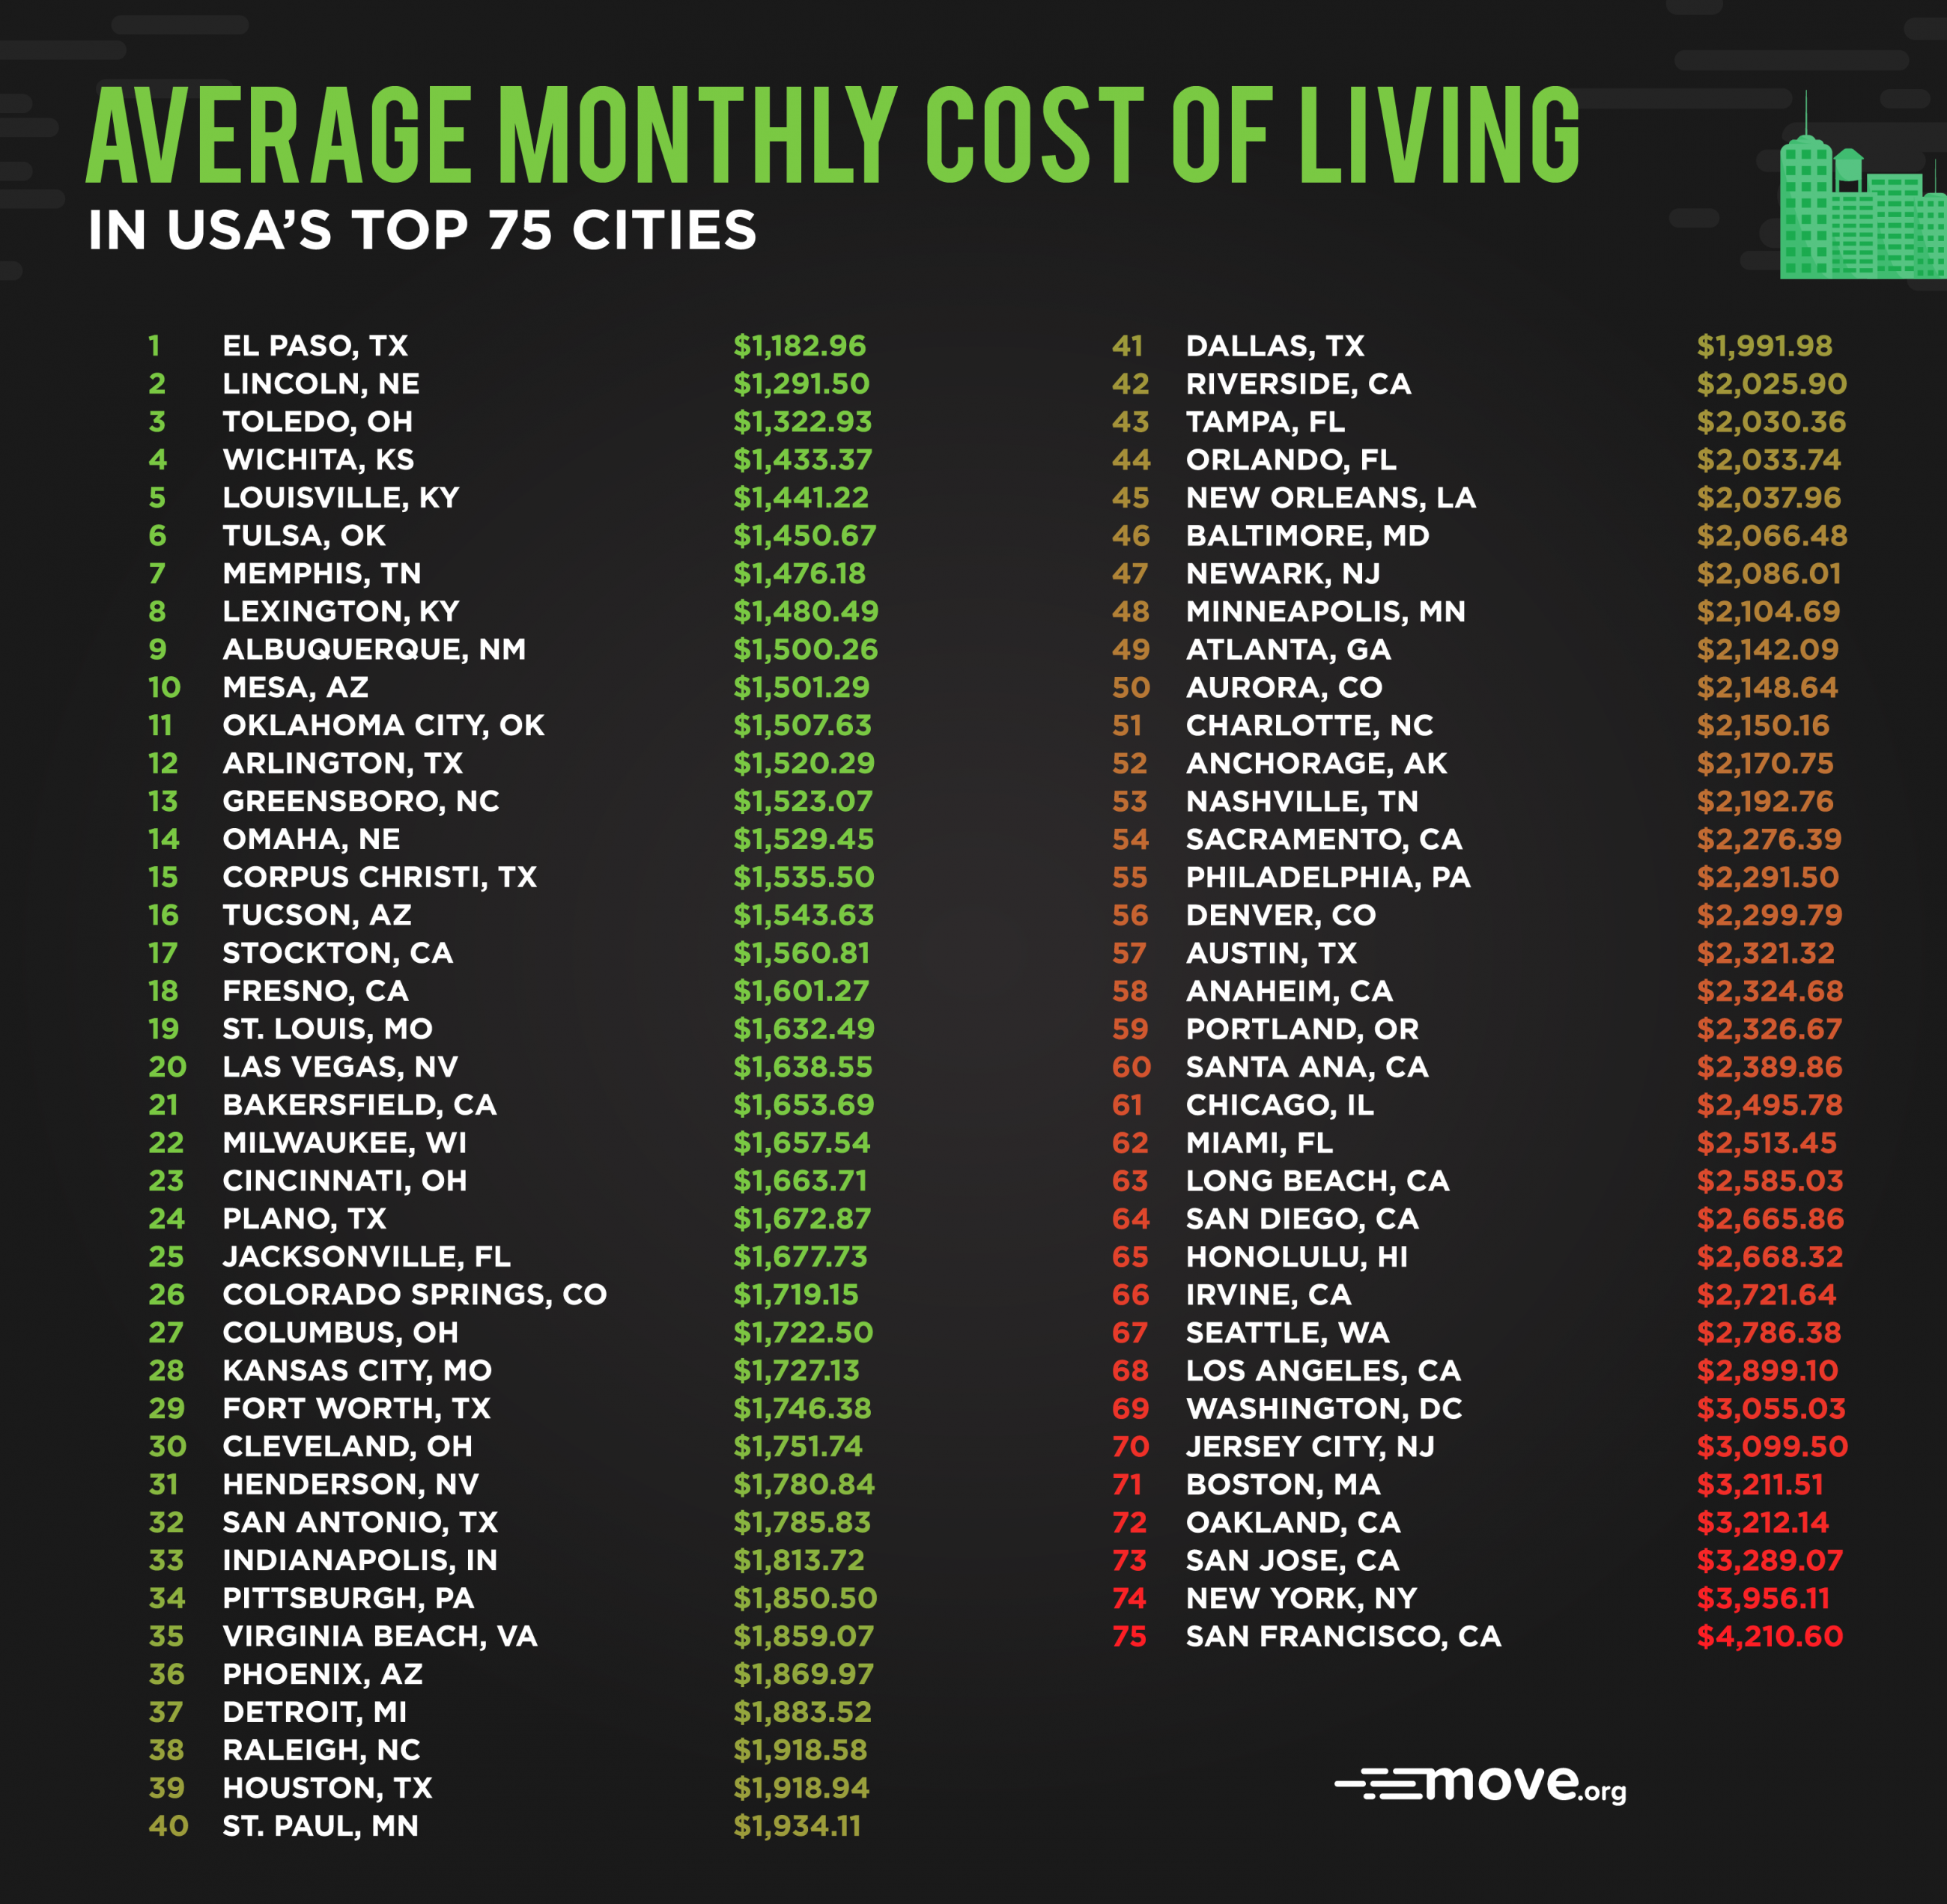 The Cheapest and Priciest Places to Live in the U.S.